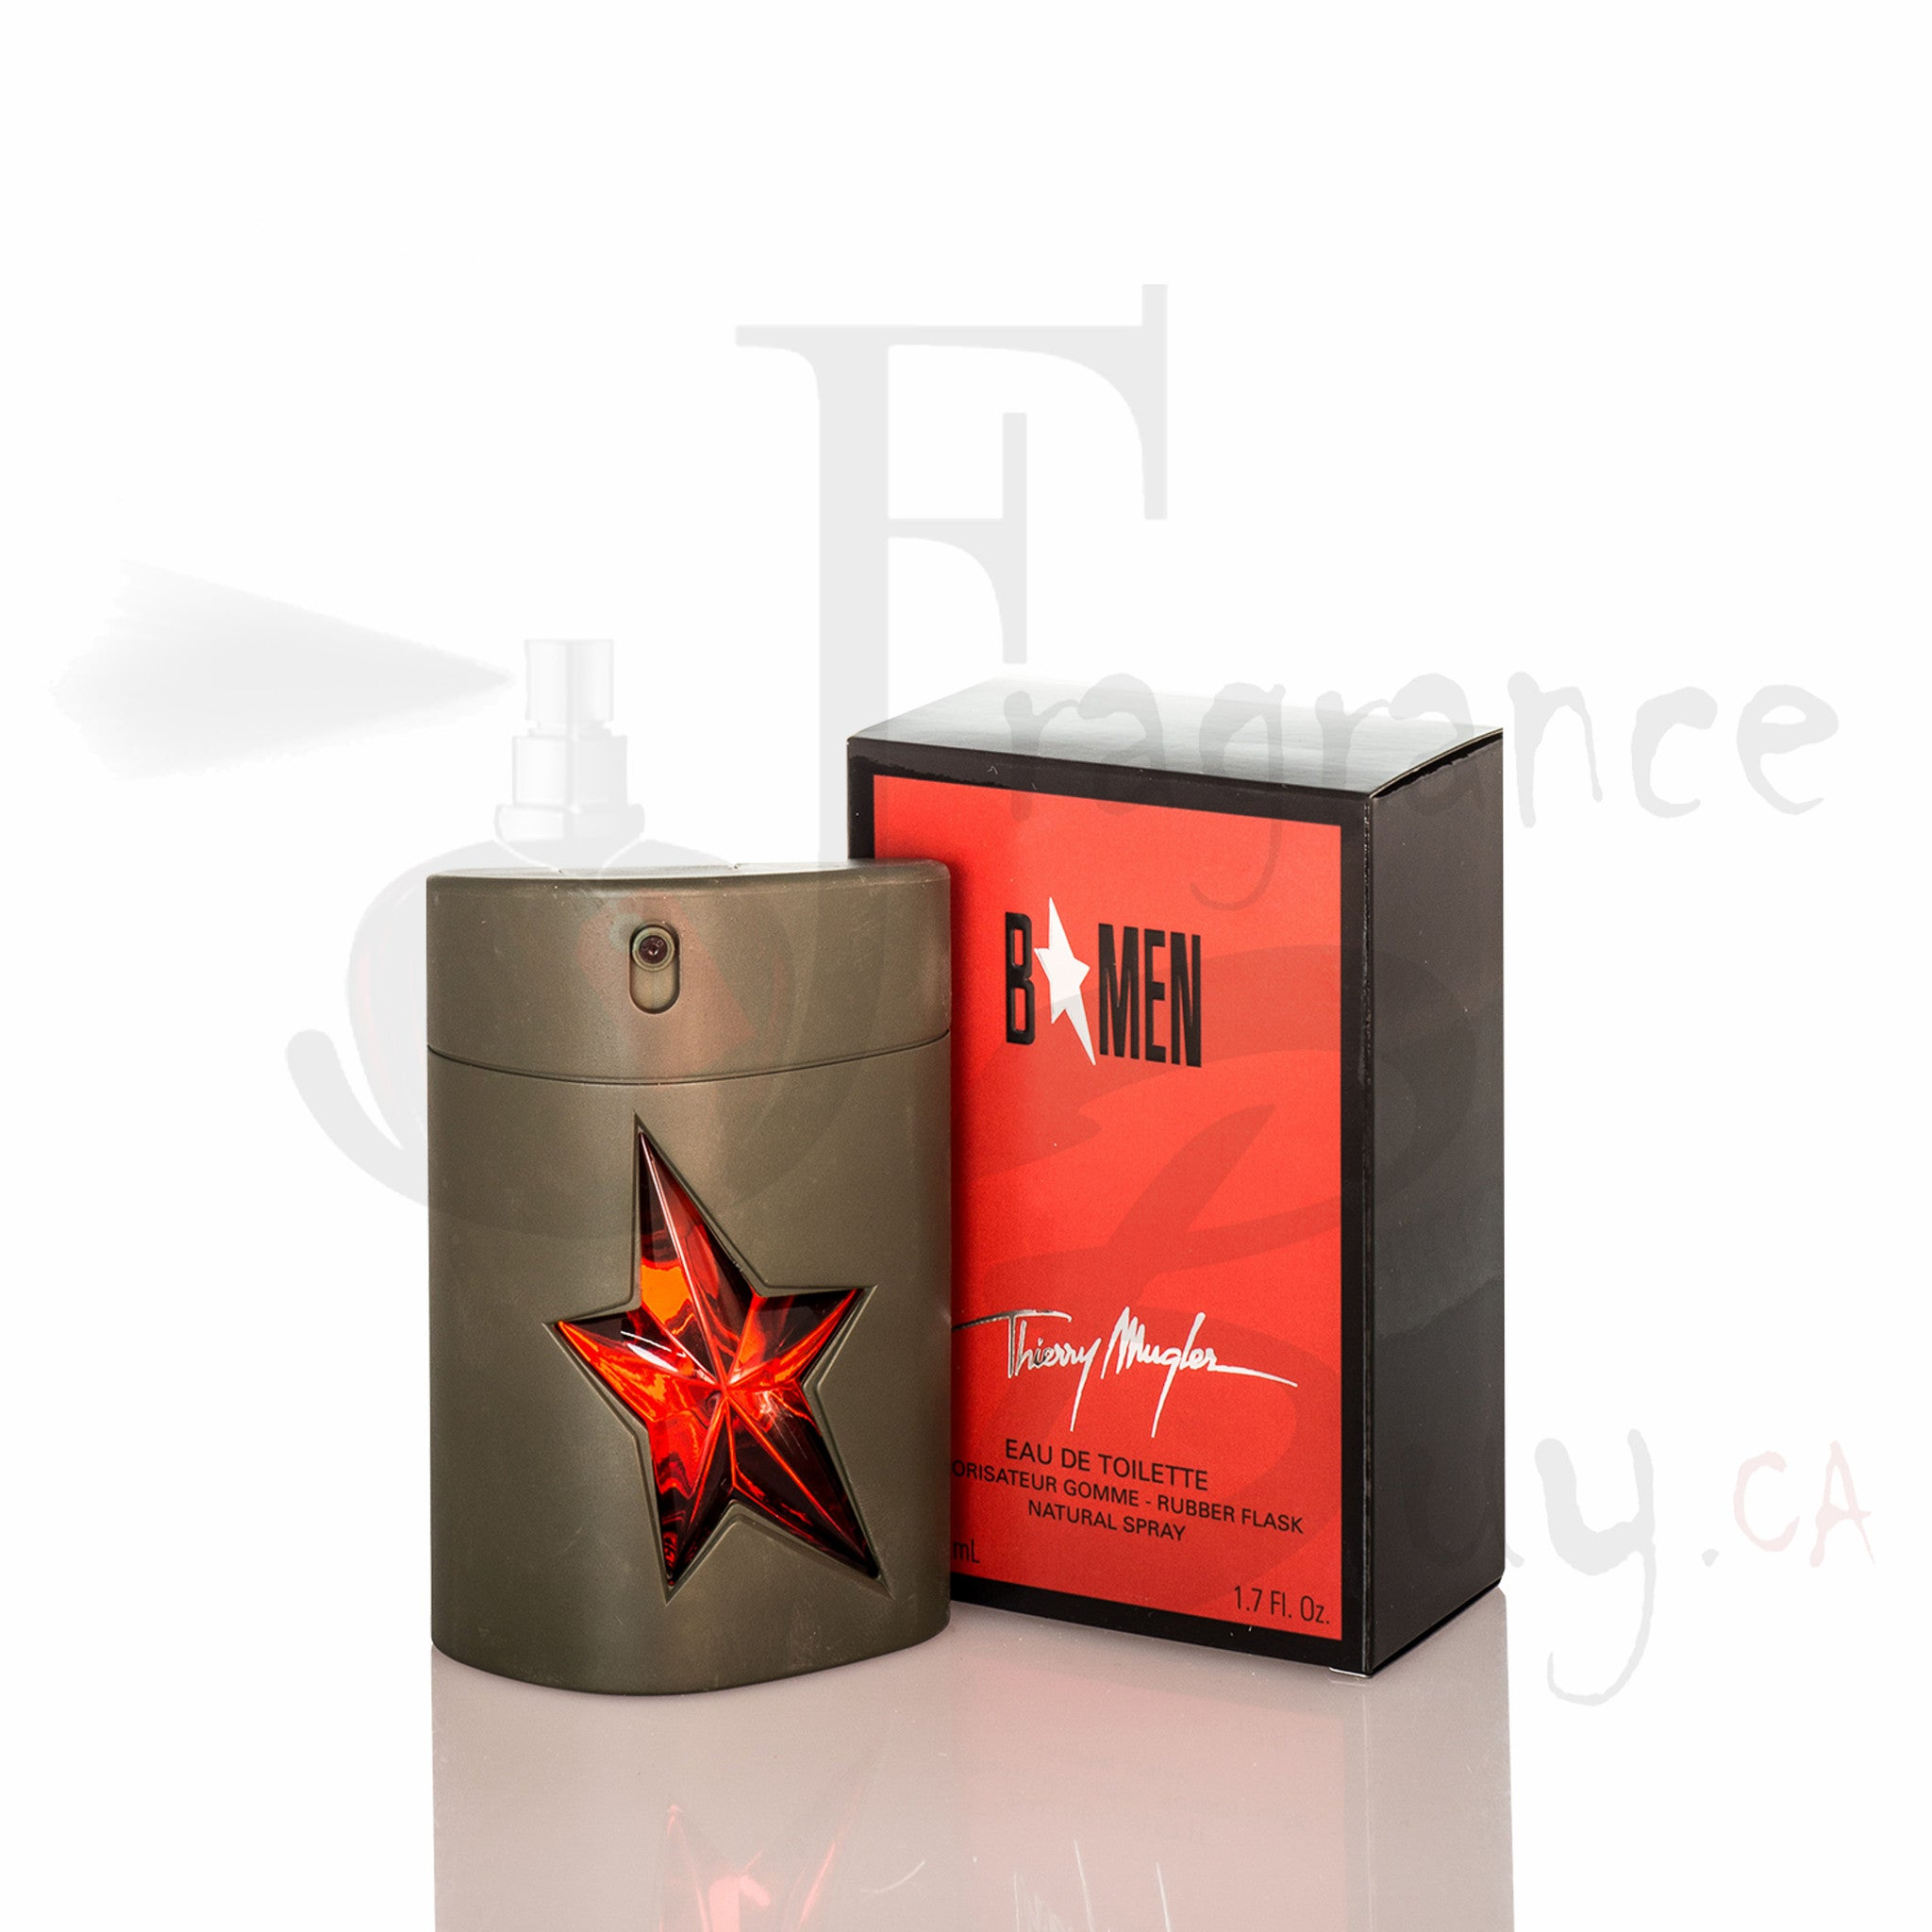 B Man by Thierry Mugler For Man